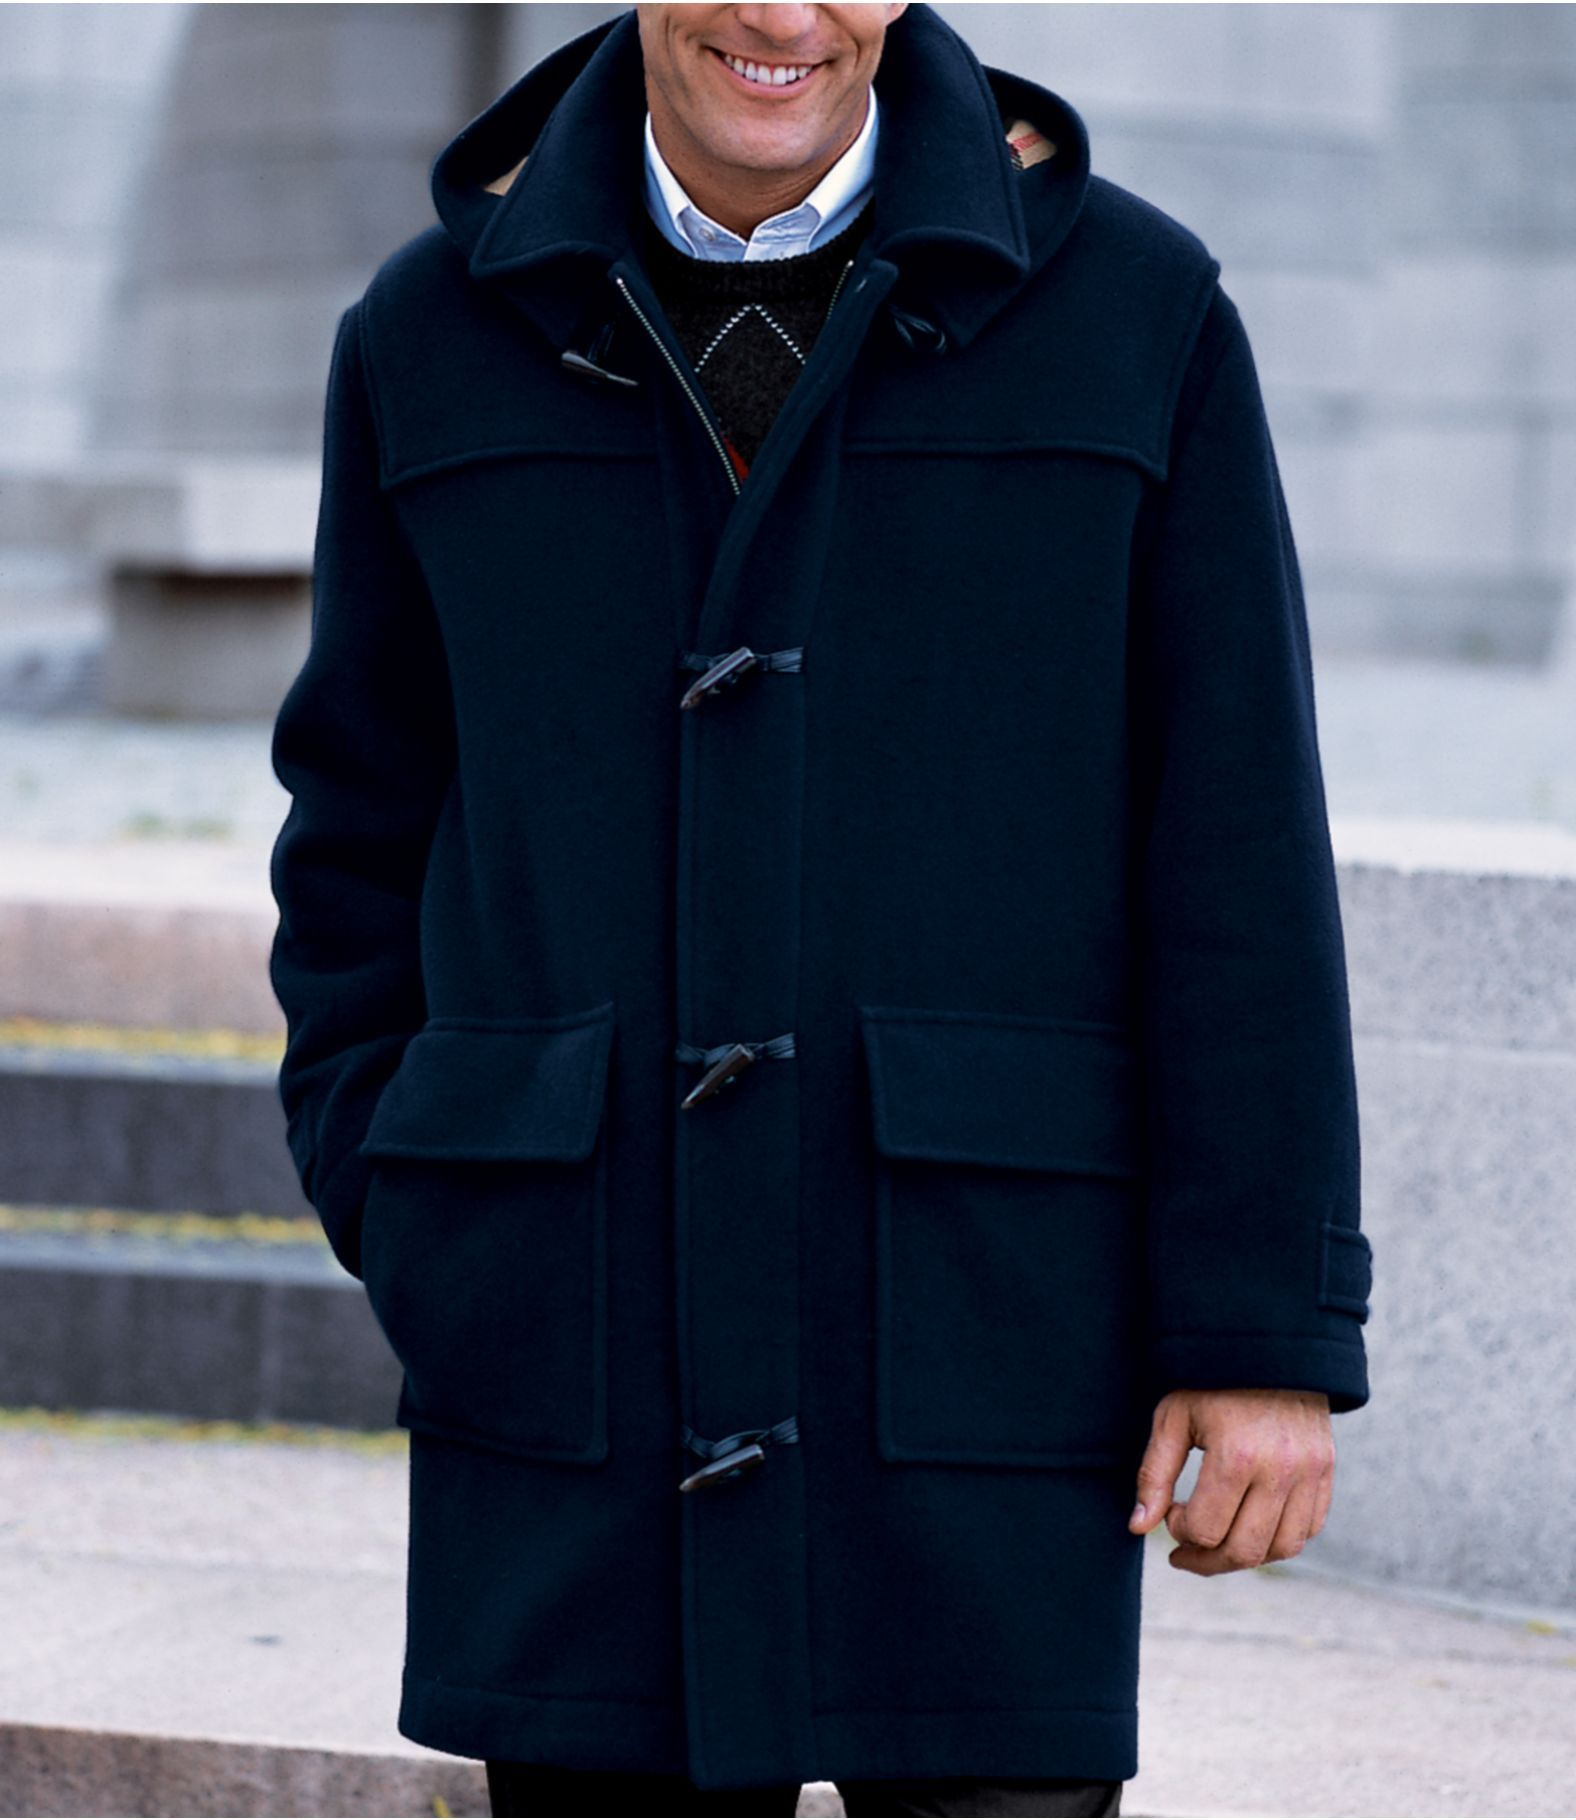 Overcoats | Classic Men's Style. | Pinterest | Mens duffle coat